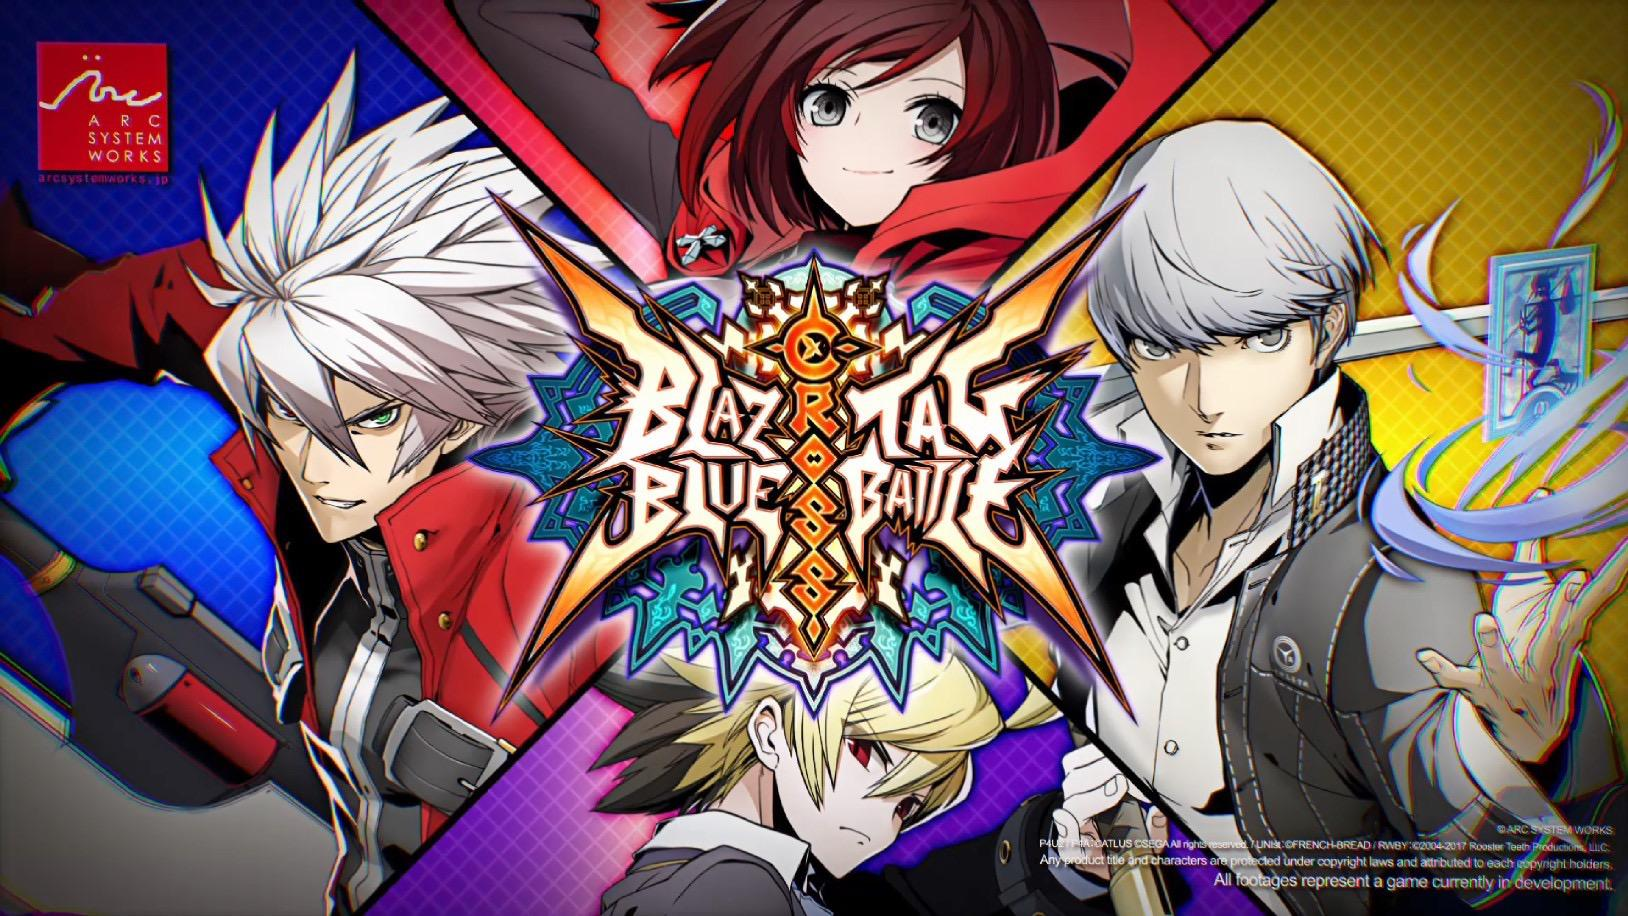 Arc System Works Introduces New BlazBlue Game With Special Guest Characters